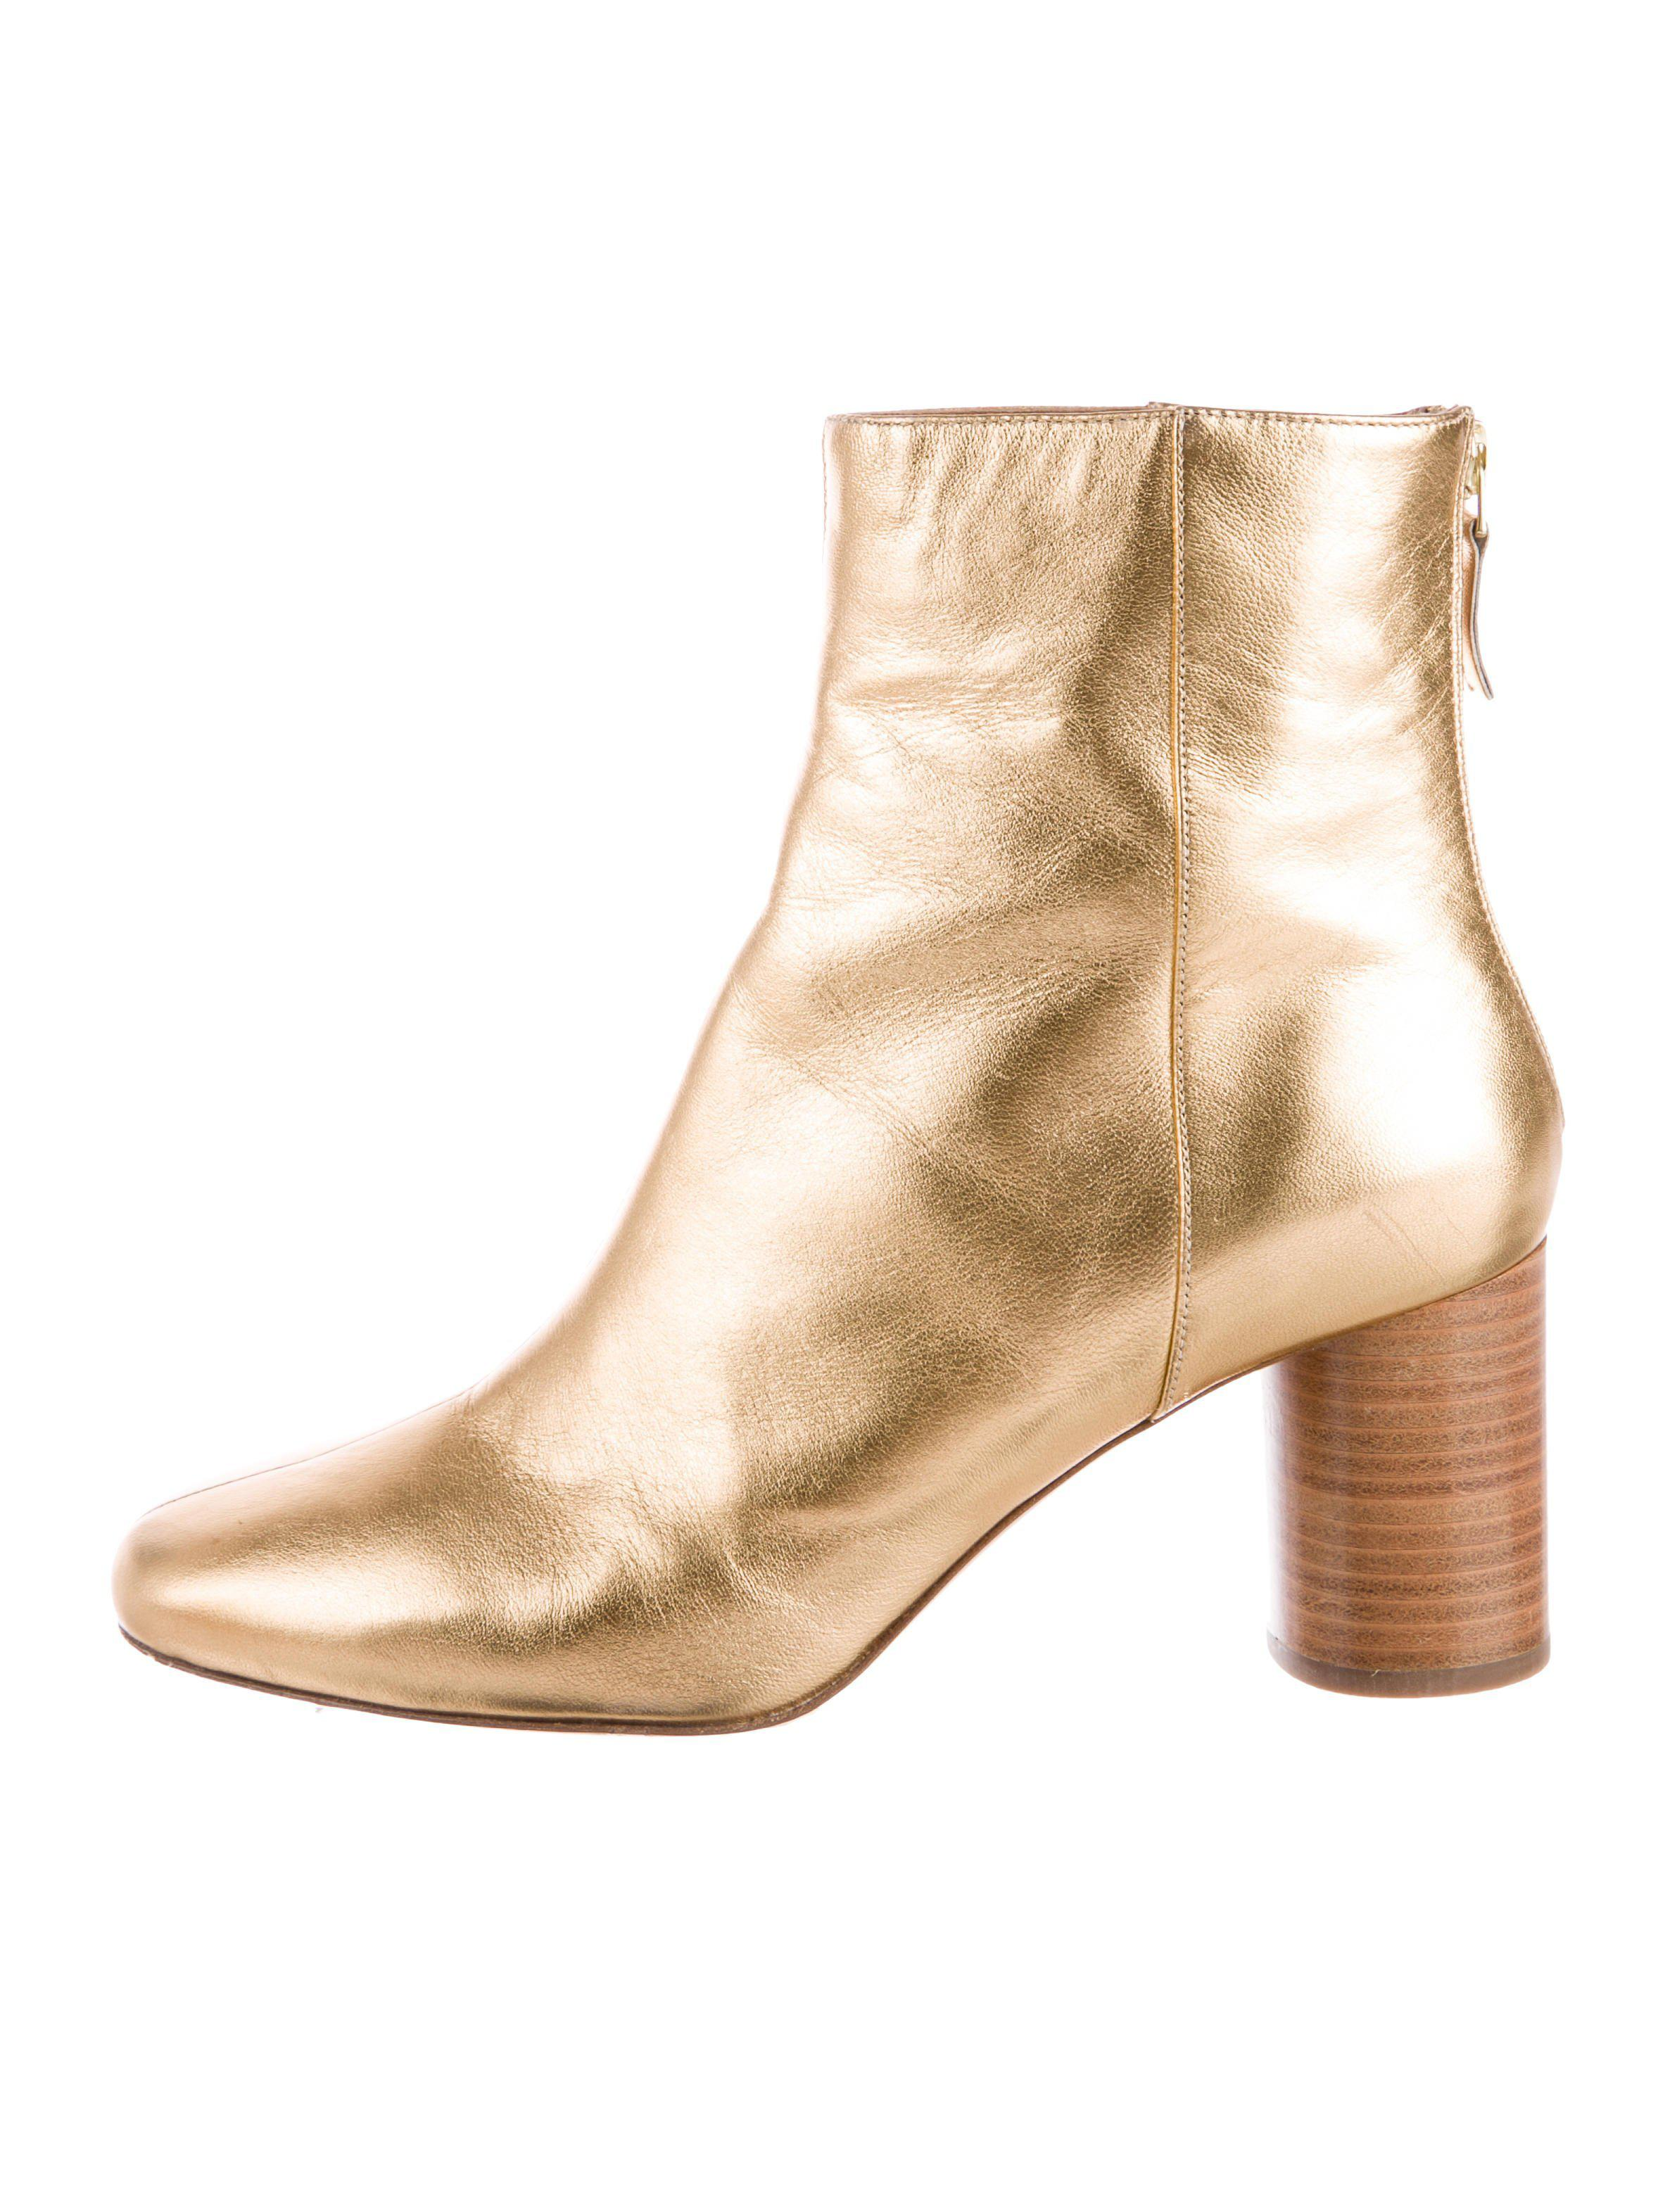 Sandro Metallic Ankle Boots release dates cheap online popular factory outlet online cheap sale lowest price shopping online cheap online czvnMo